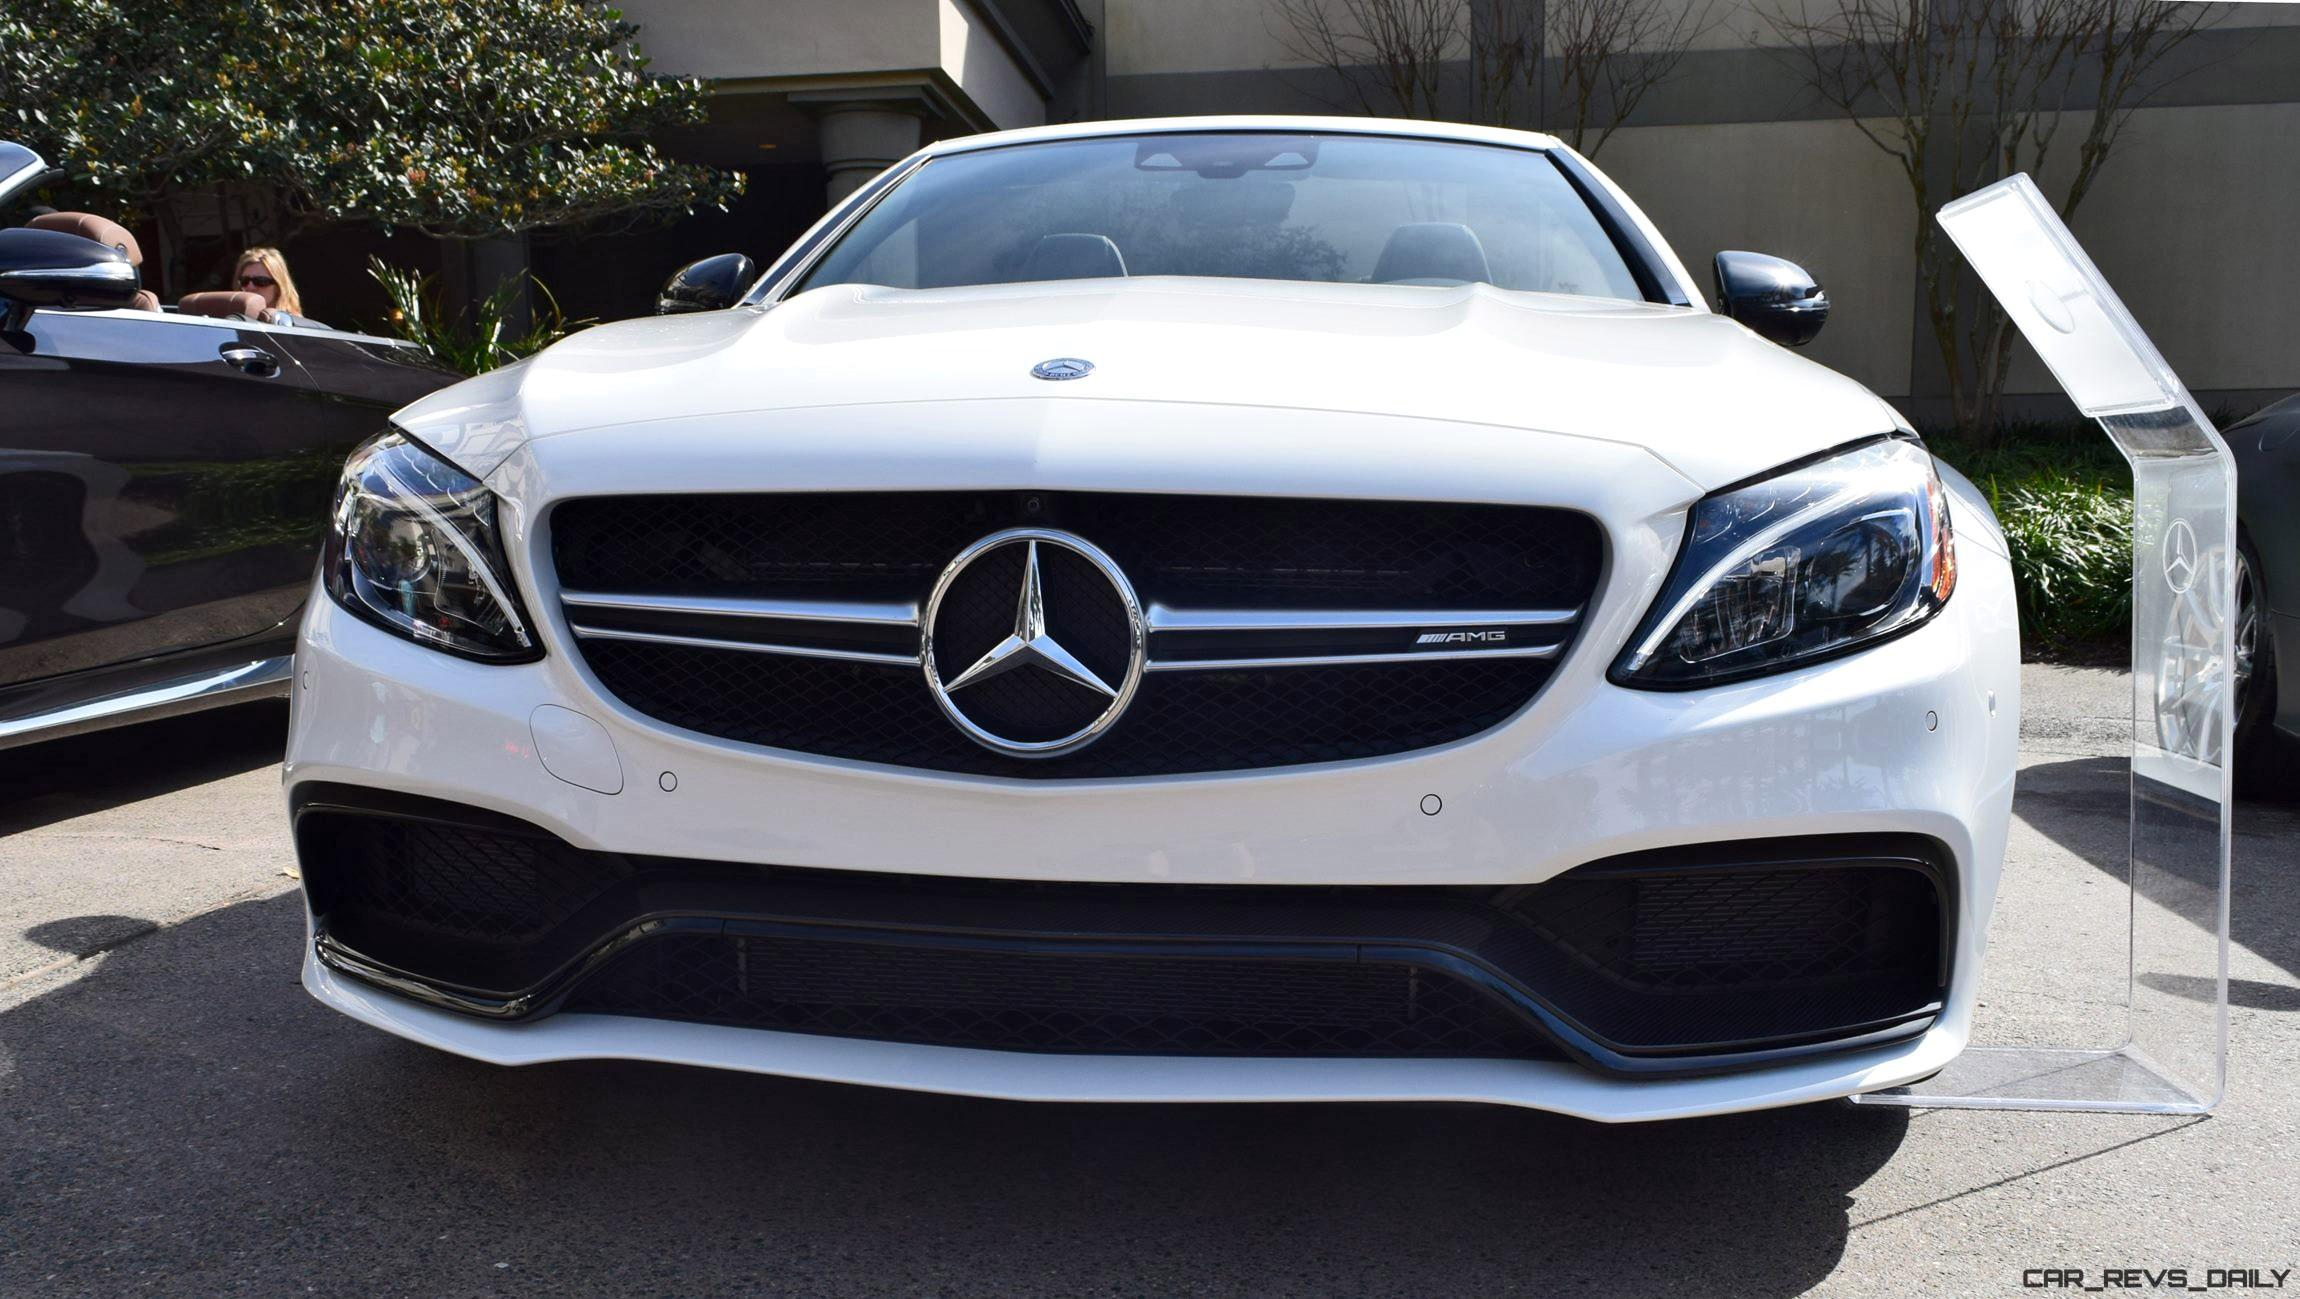 2017 mercedes amg c63s cabriolet at amelia island 25 photos car revs. Black Bedroom Furniture Sets. Home Design Ideas